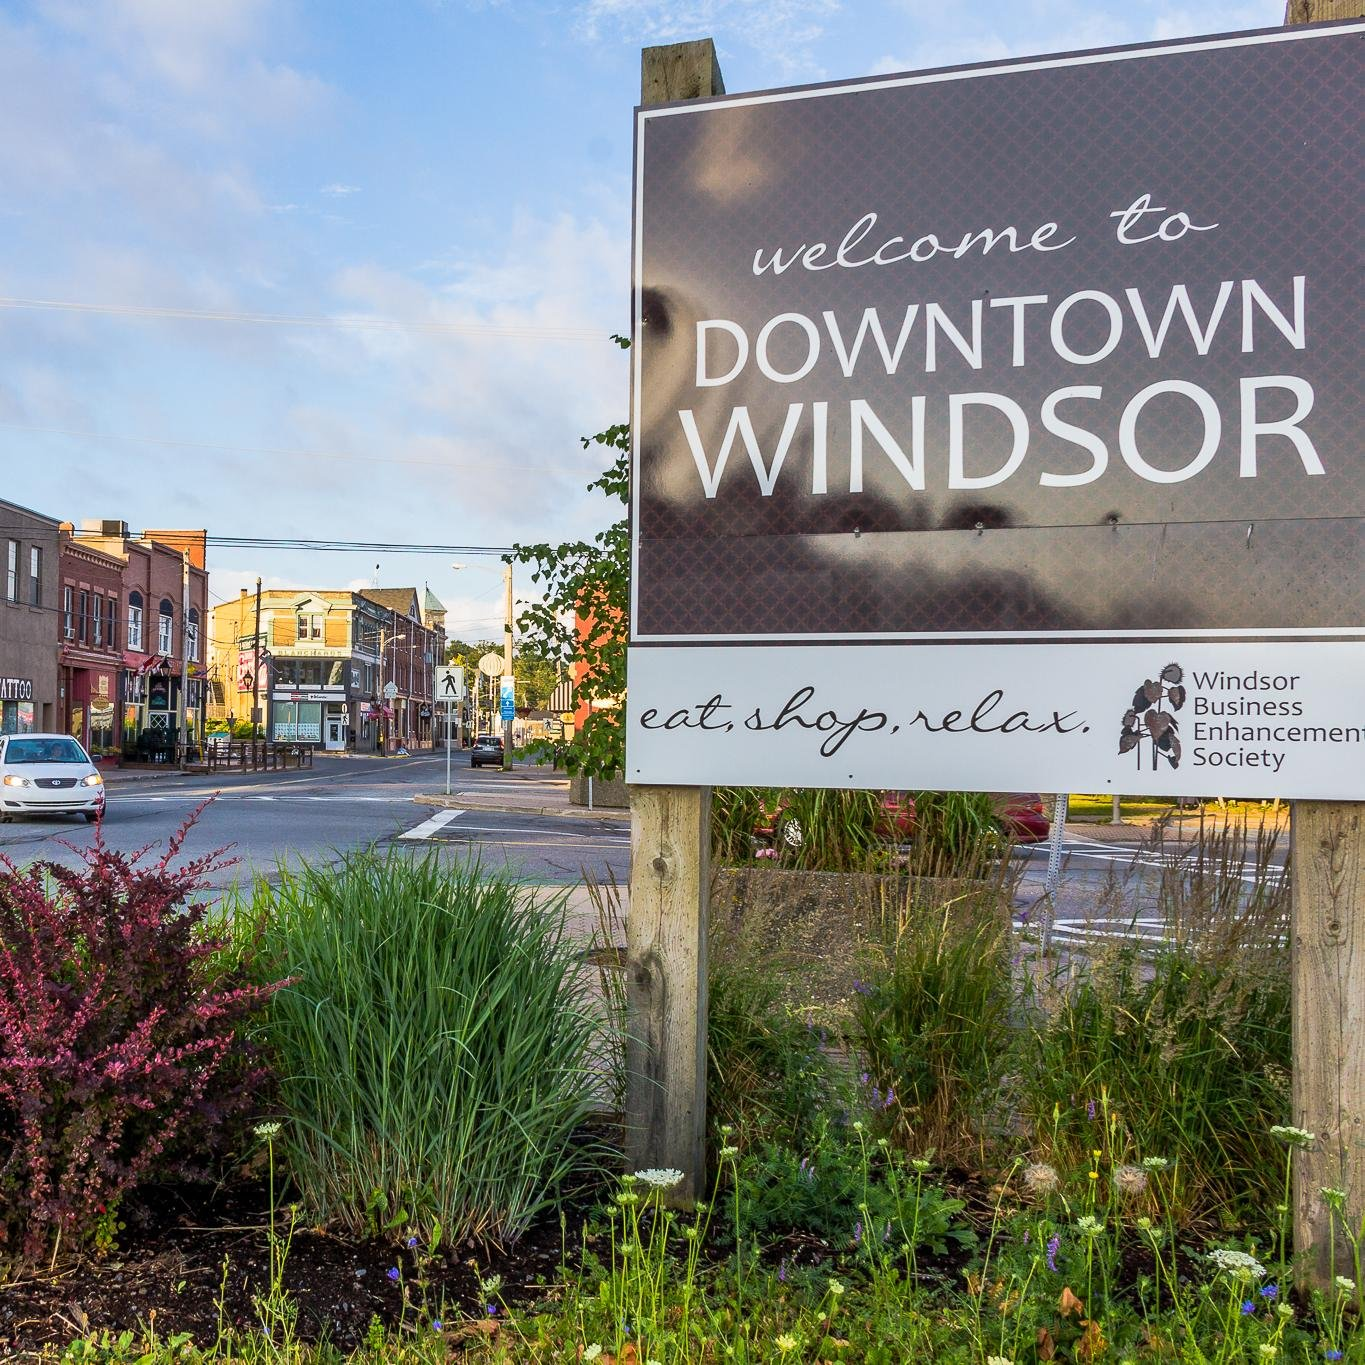 Downtown Windsor, Nova Scotia